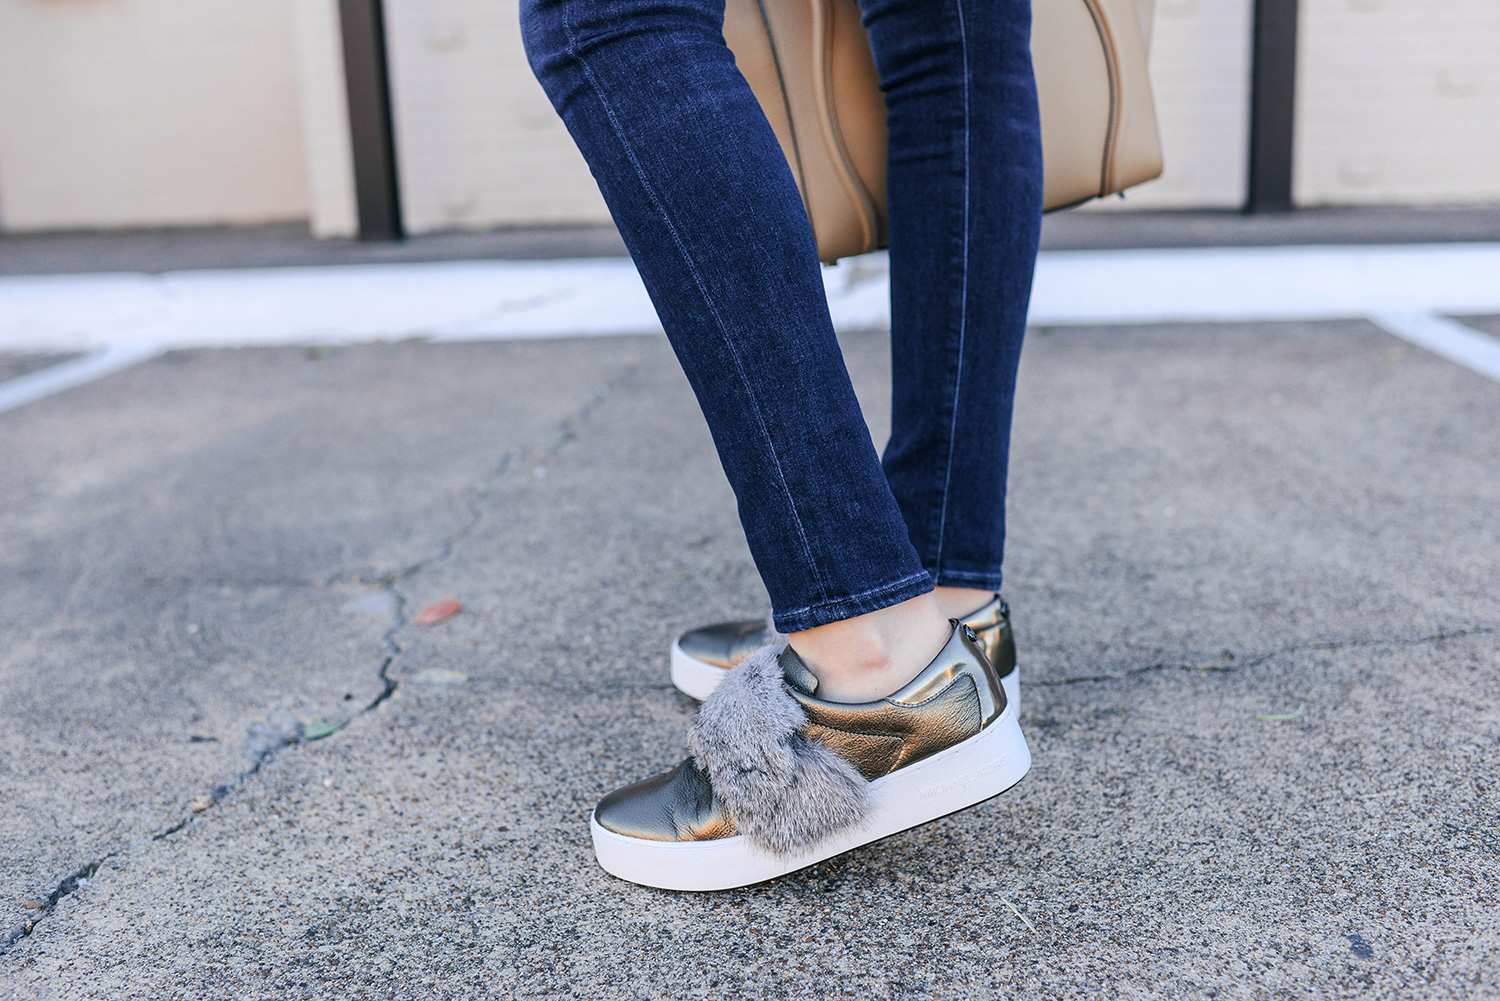 Michael Kors Fur Trim Sneaker | The Style Scribe